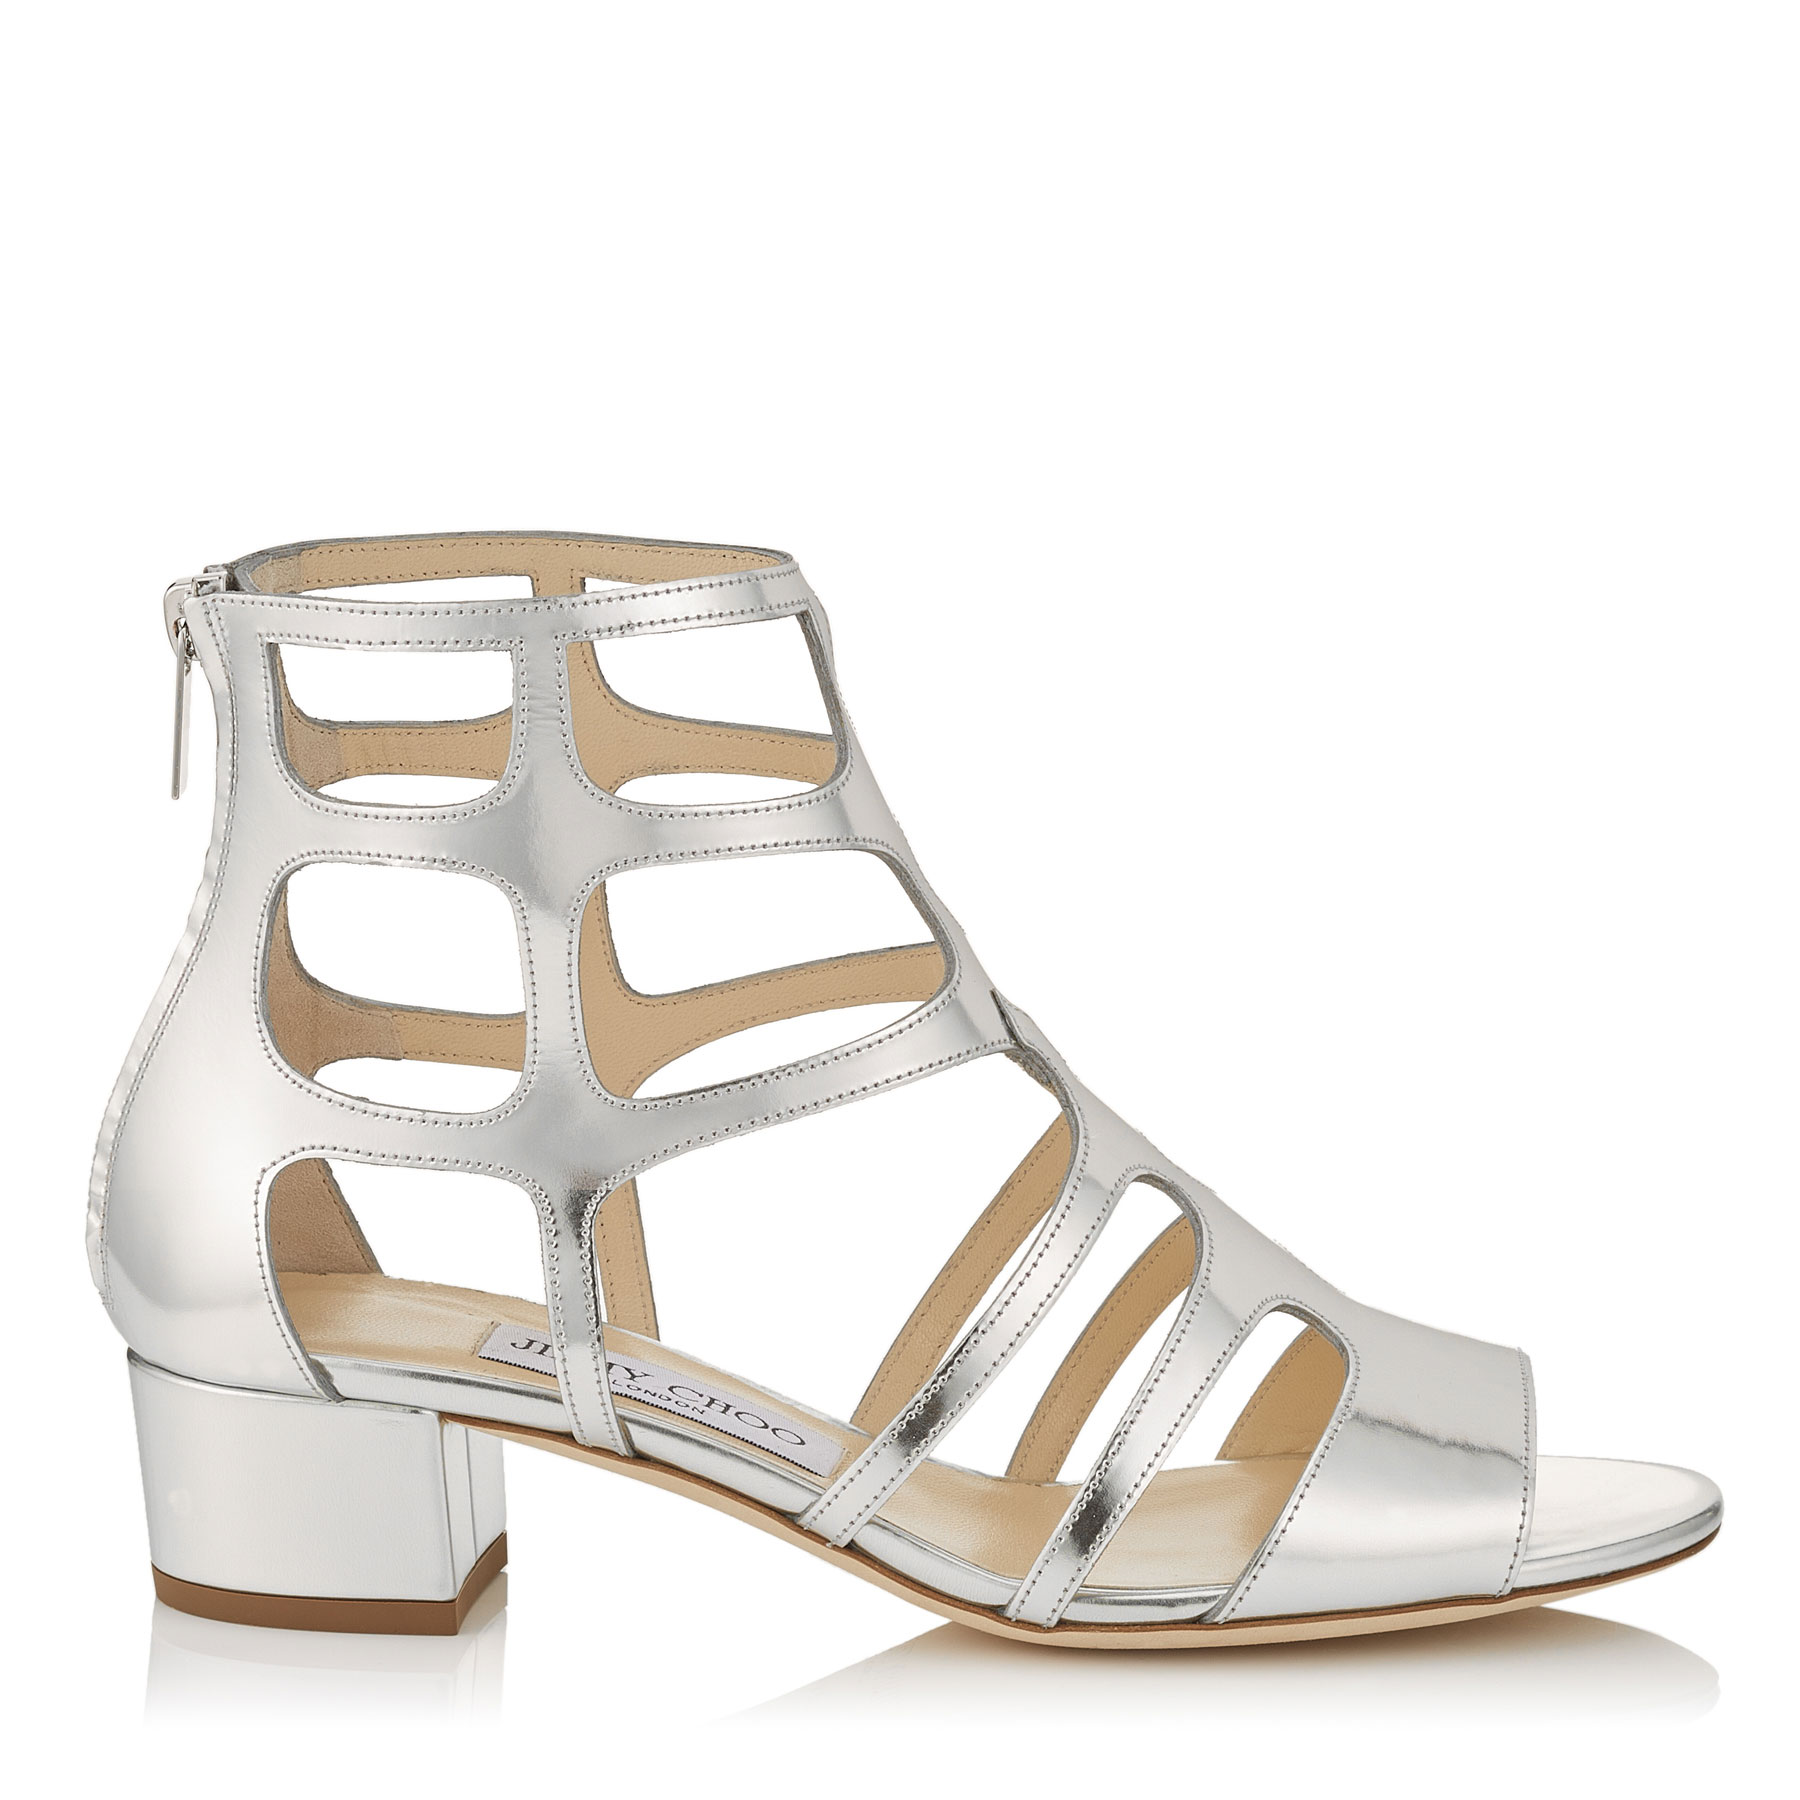 REN 35 Silver Mirror Leather Sandals by Jimmy Choo